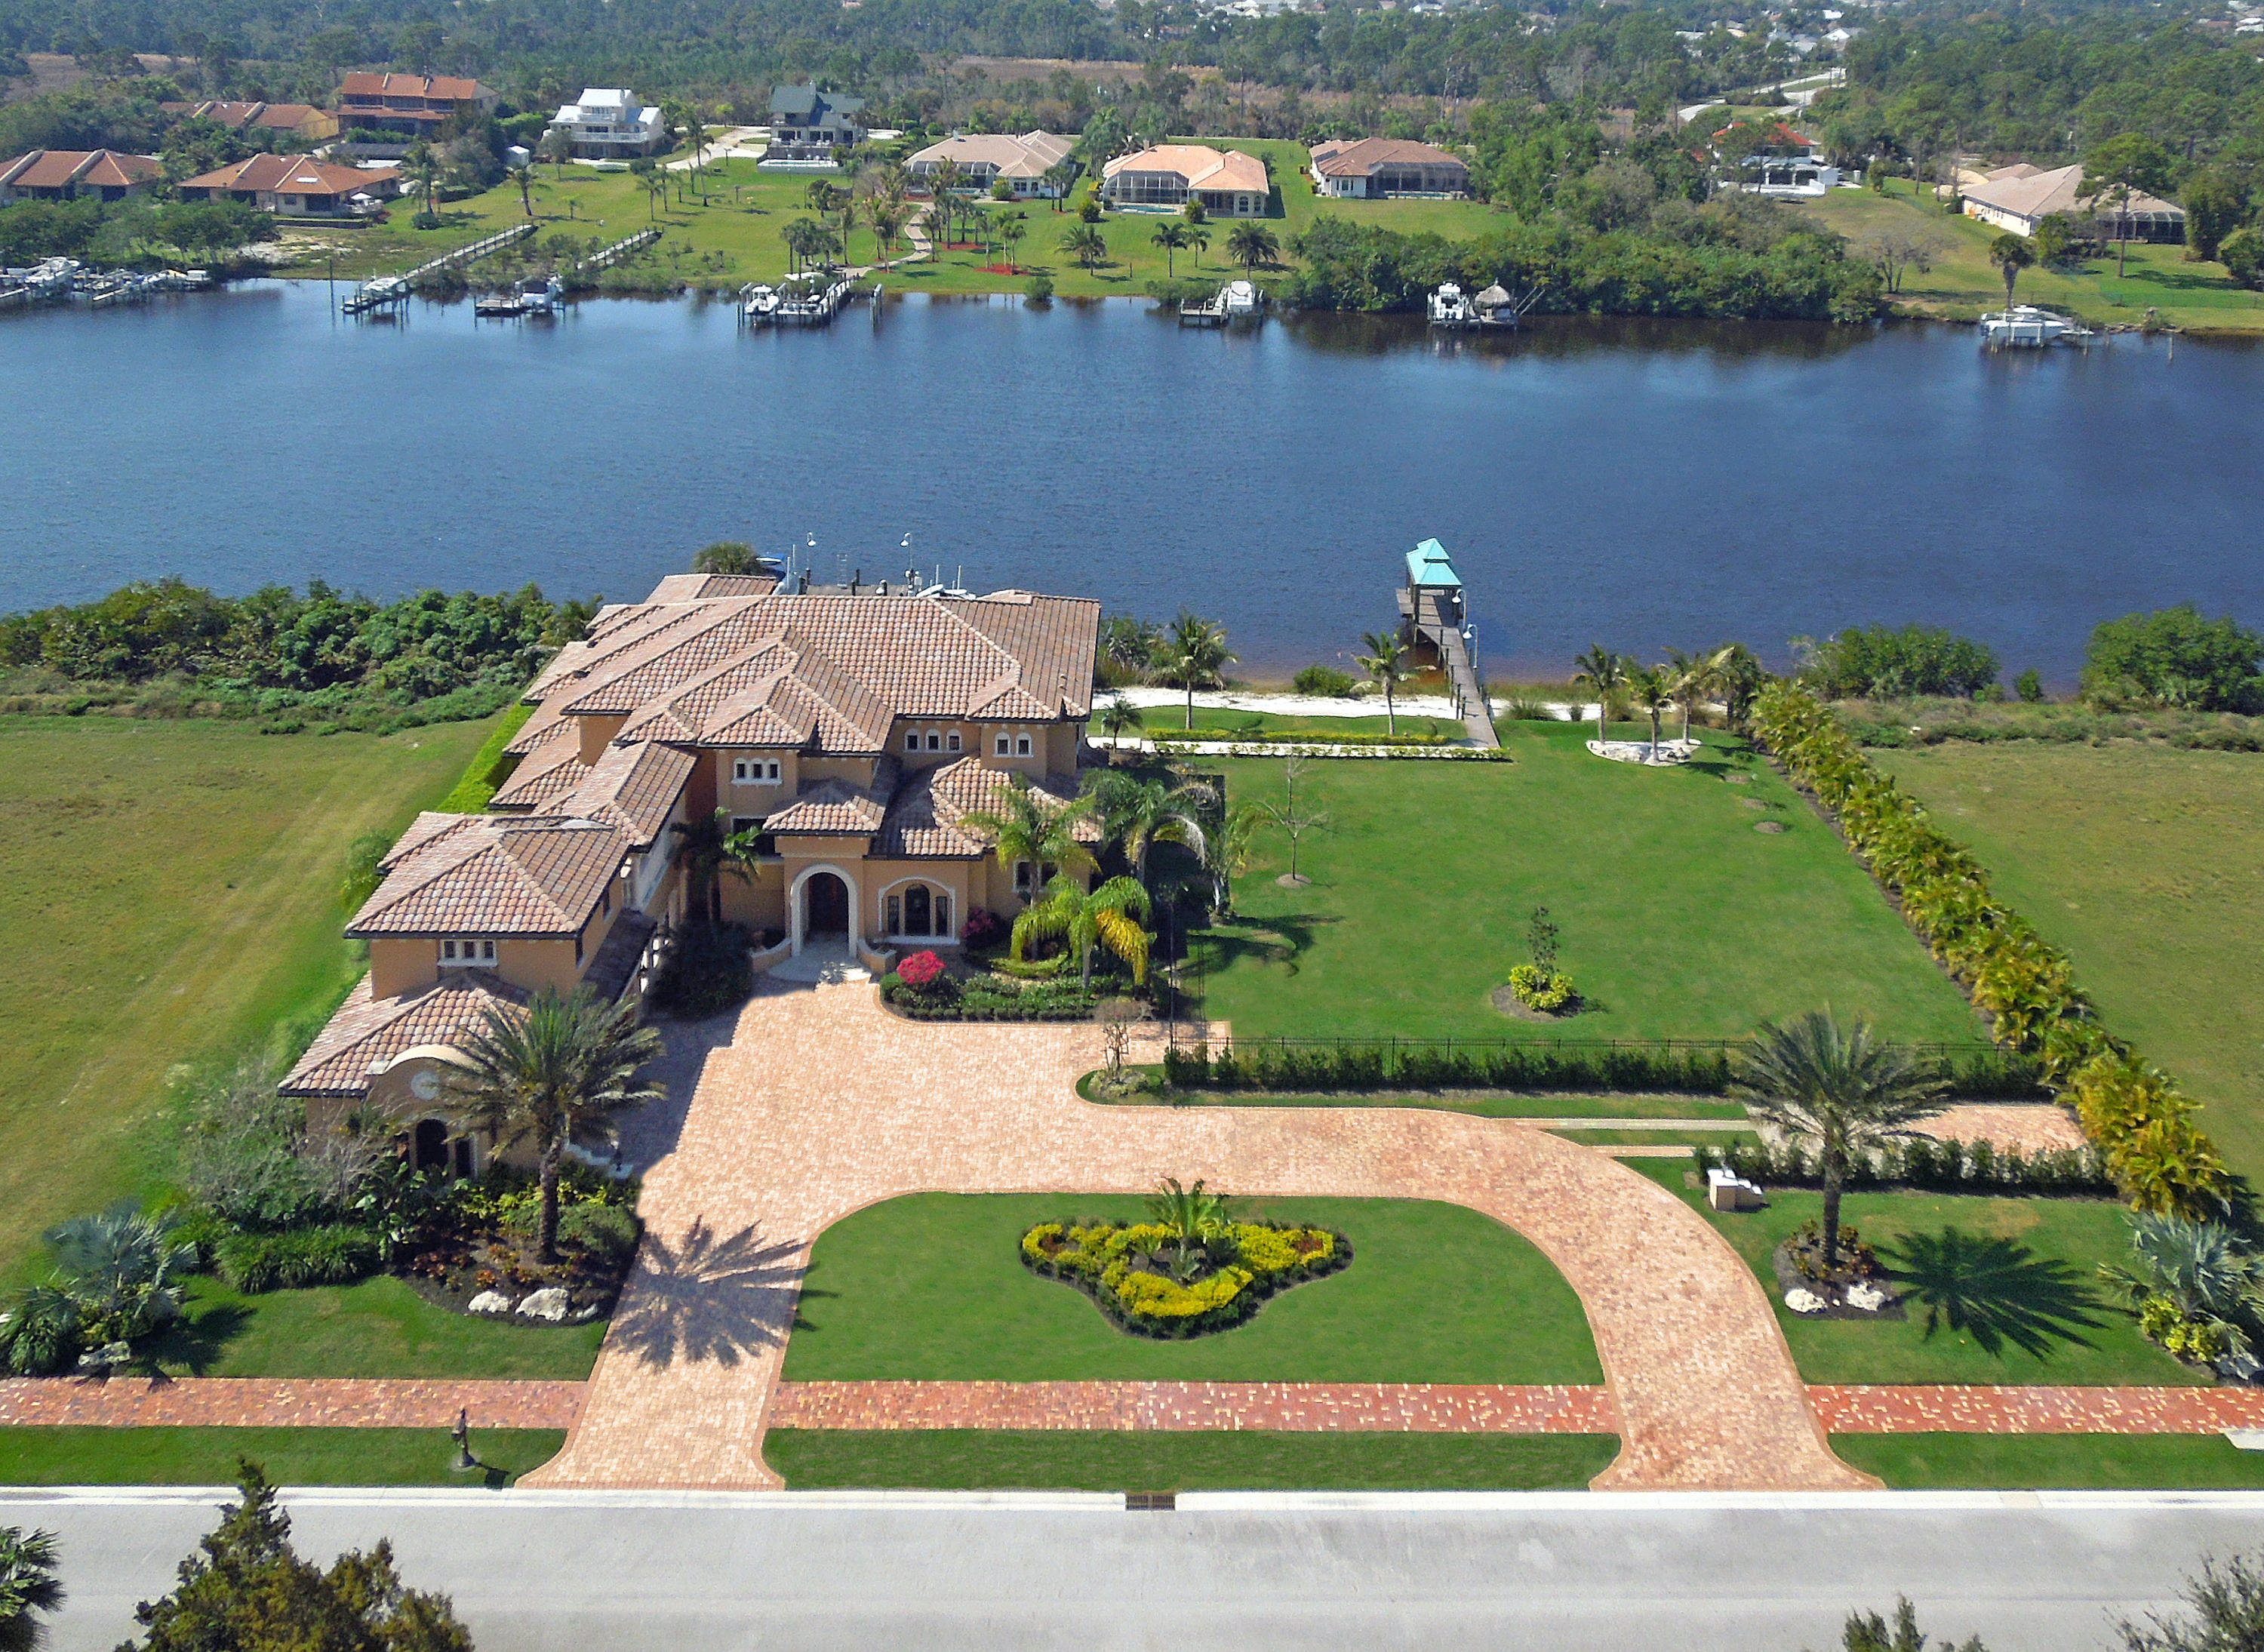 The Island of Ravello is a highly sought-after private development set on the breathtaking St. Lucie River at the southern end of St. Lucie County. This home is beautifully designed and packed full of upgrades like Brazilian hand-scraped wood working, wrought iron railings, Cast stone columns, custom draperies fans & light fixtures, extensive use of hardwoods throughout, 10ft front doors, impact glass throughout, Marble flooring with inlay accents, gourmet kitchen with Wolf, Sub-zero, and Asko appliances Theatre room, Elevator, state of the art audio/video, camera & AC thermostats, all bedrooms have covered balconies, bathrooms and walk-in closets, RV/boat storage with 30amp hook-up w/sewer cleanout, 2 deep water docks with boat lift and 2 jet ski lifts, furniture negotiable.